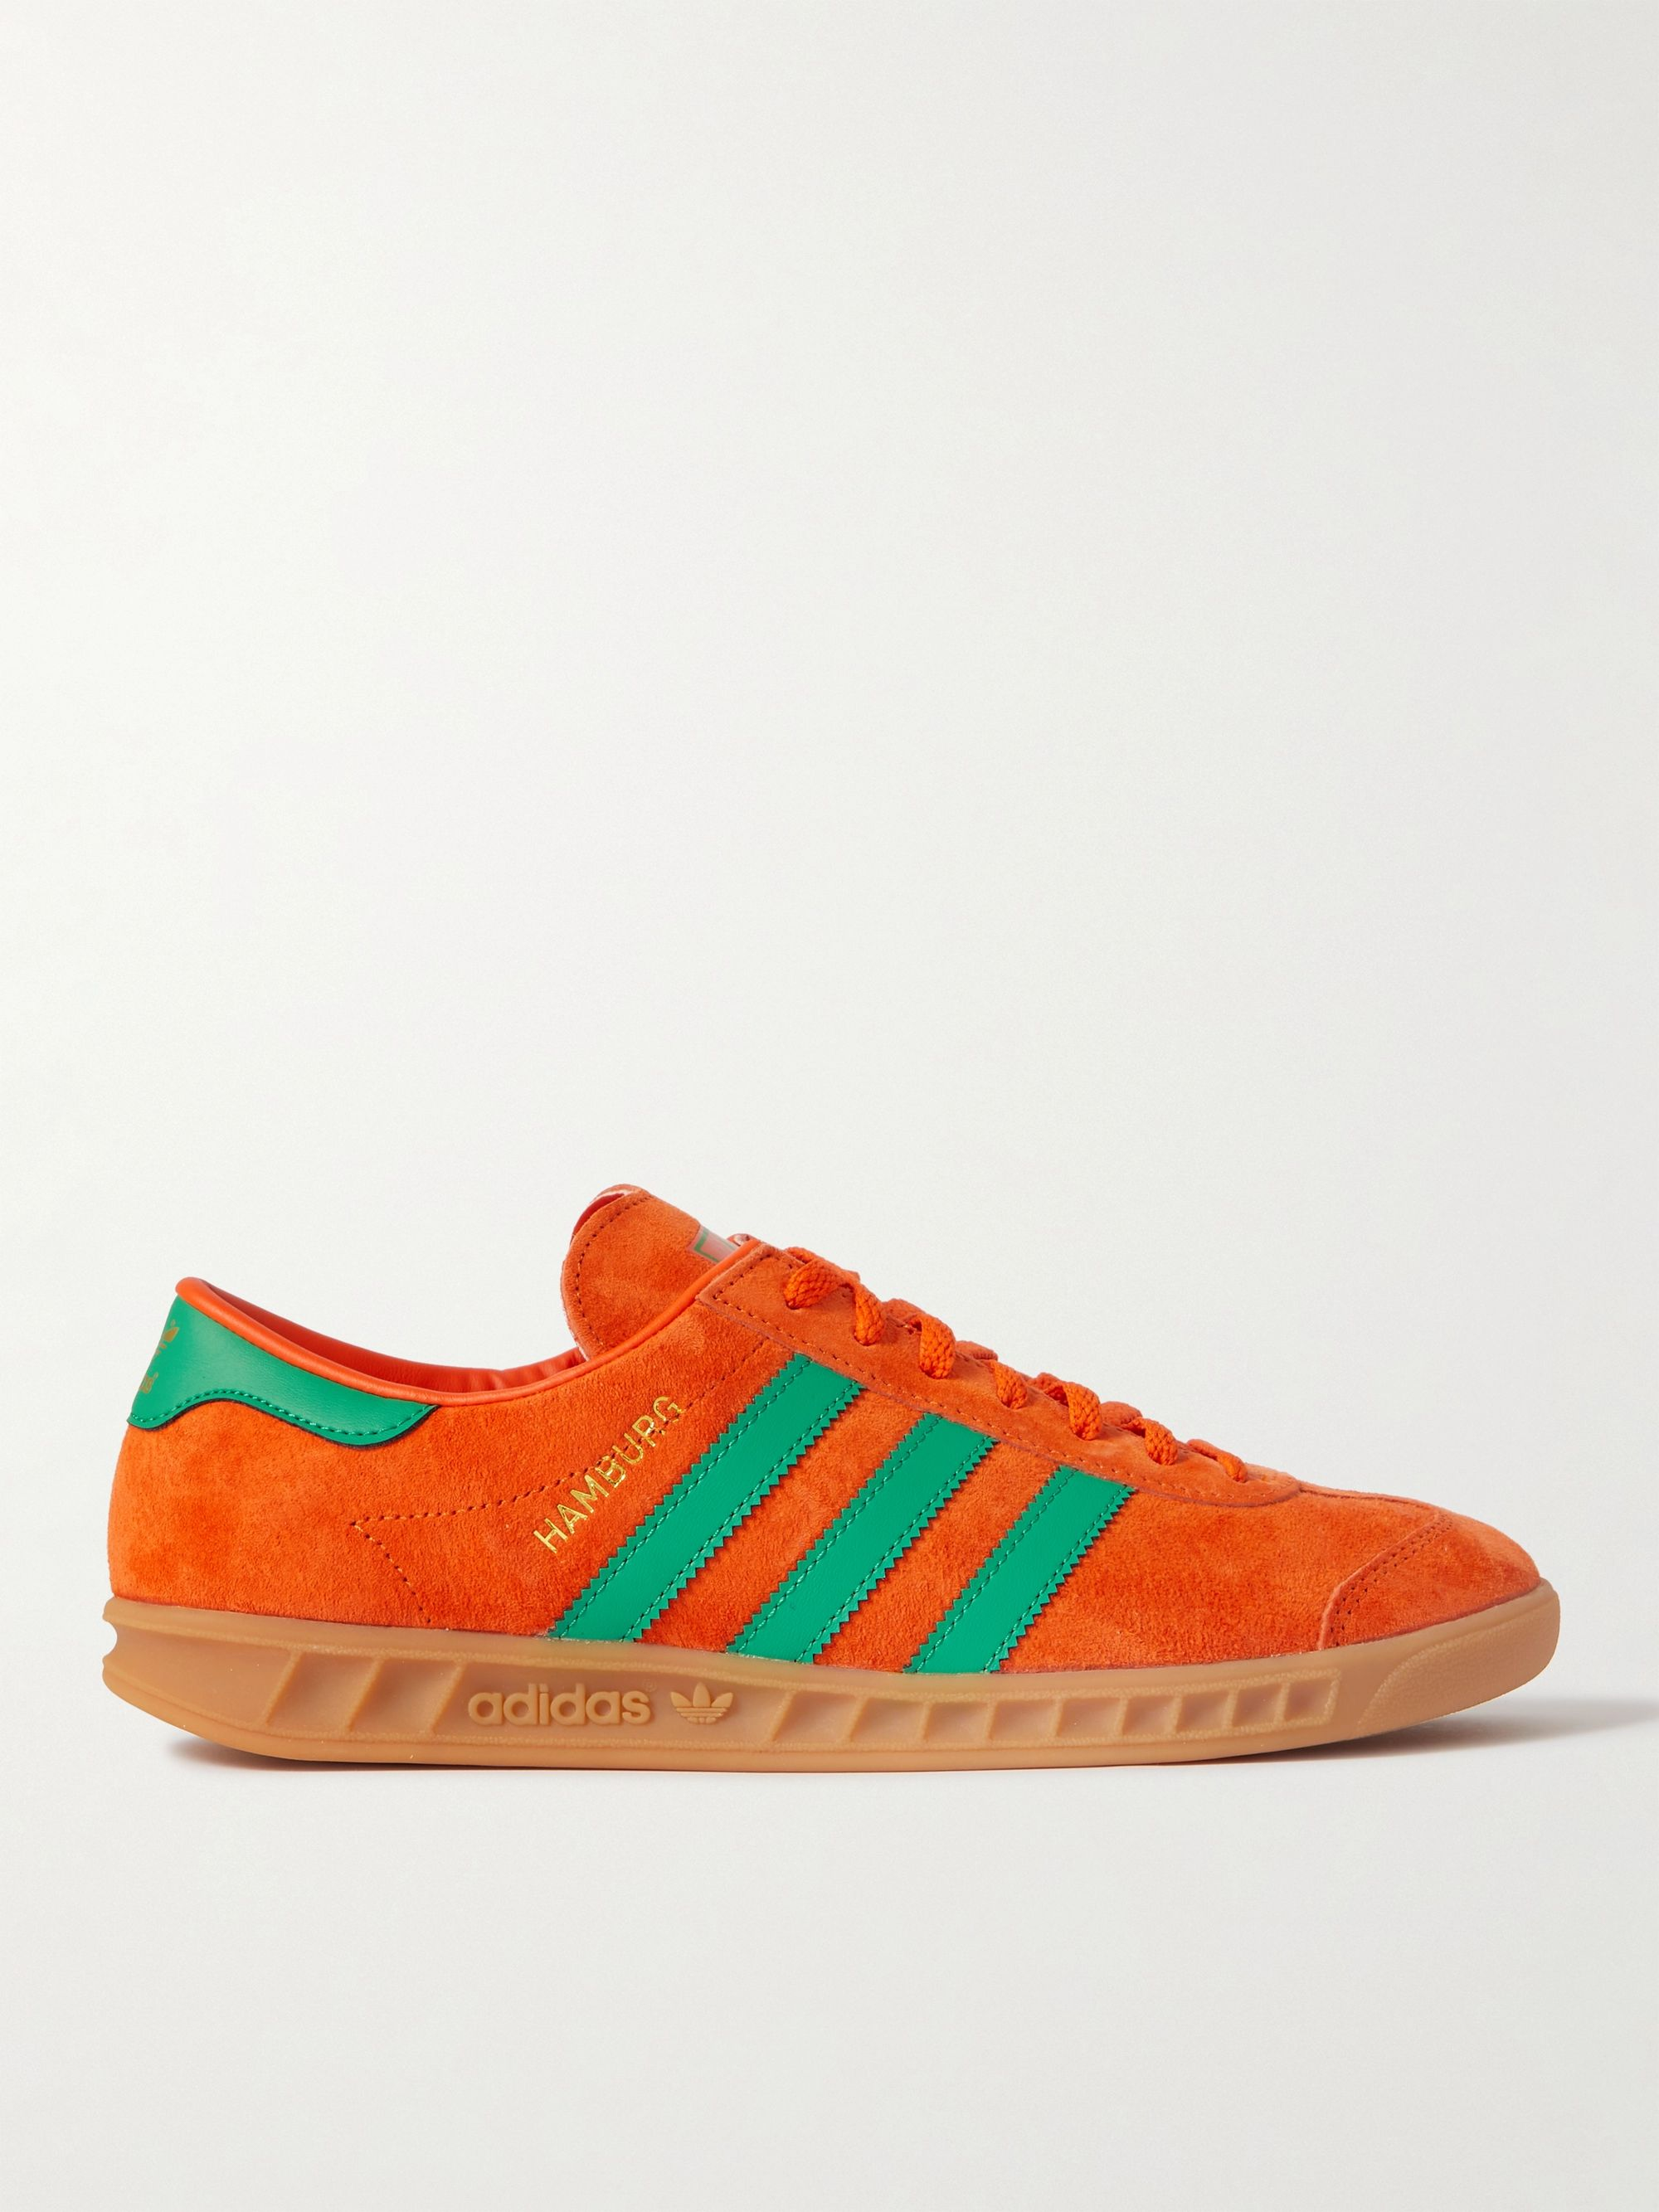 Hamburg Leather-Trimmed Suede Sneakers